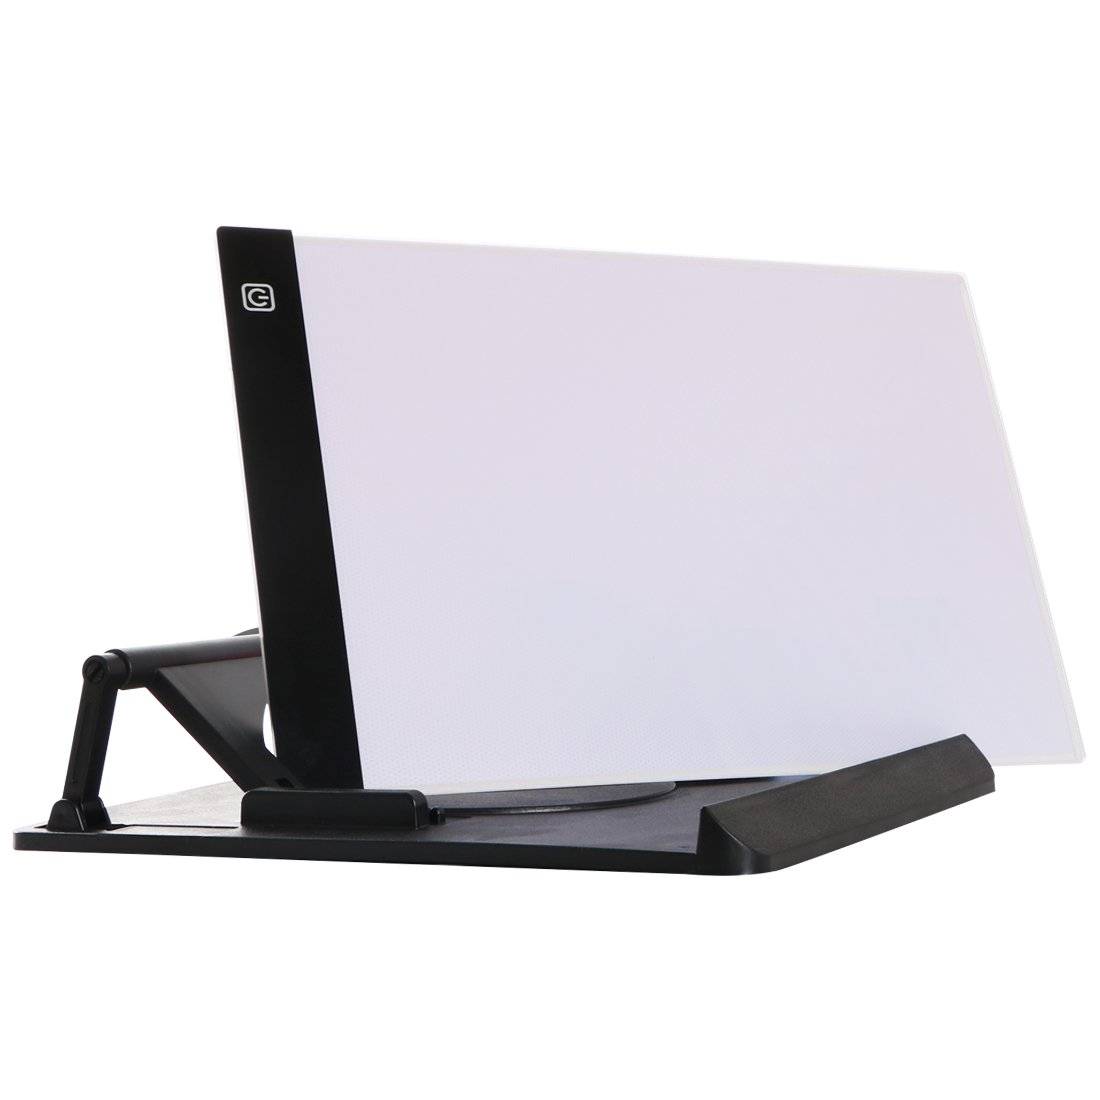 kilofly Portable A4 LED Light Box Tracing Sketch Pad USB Power Cable + Stand Kit 4336941053